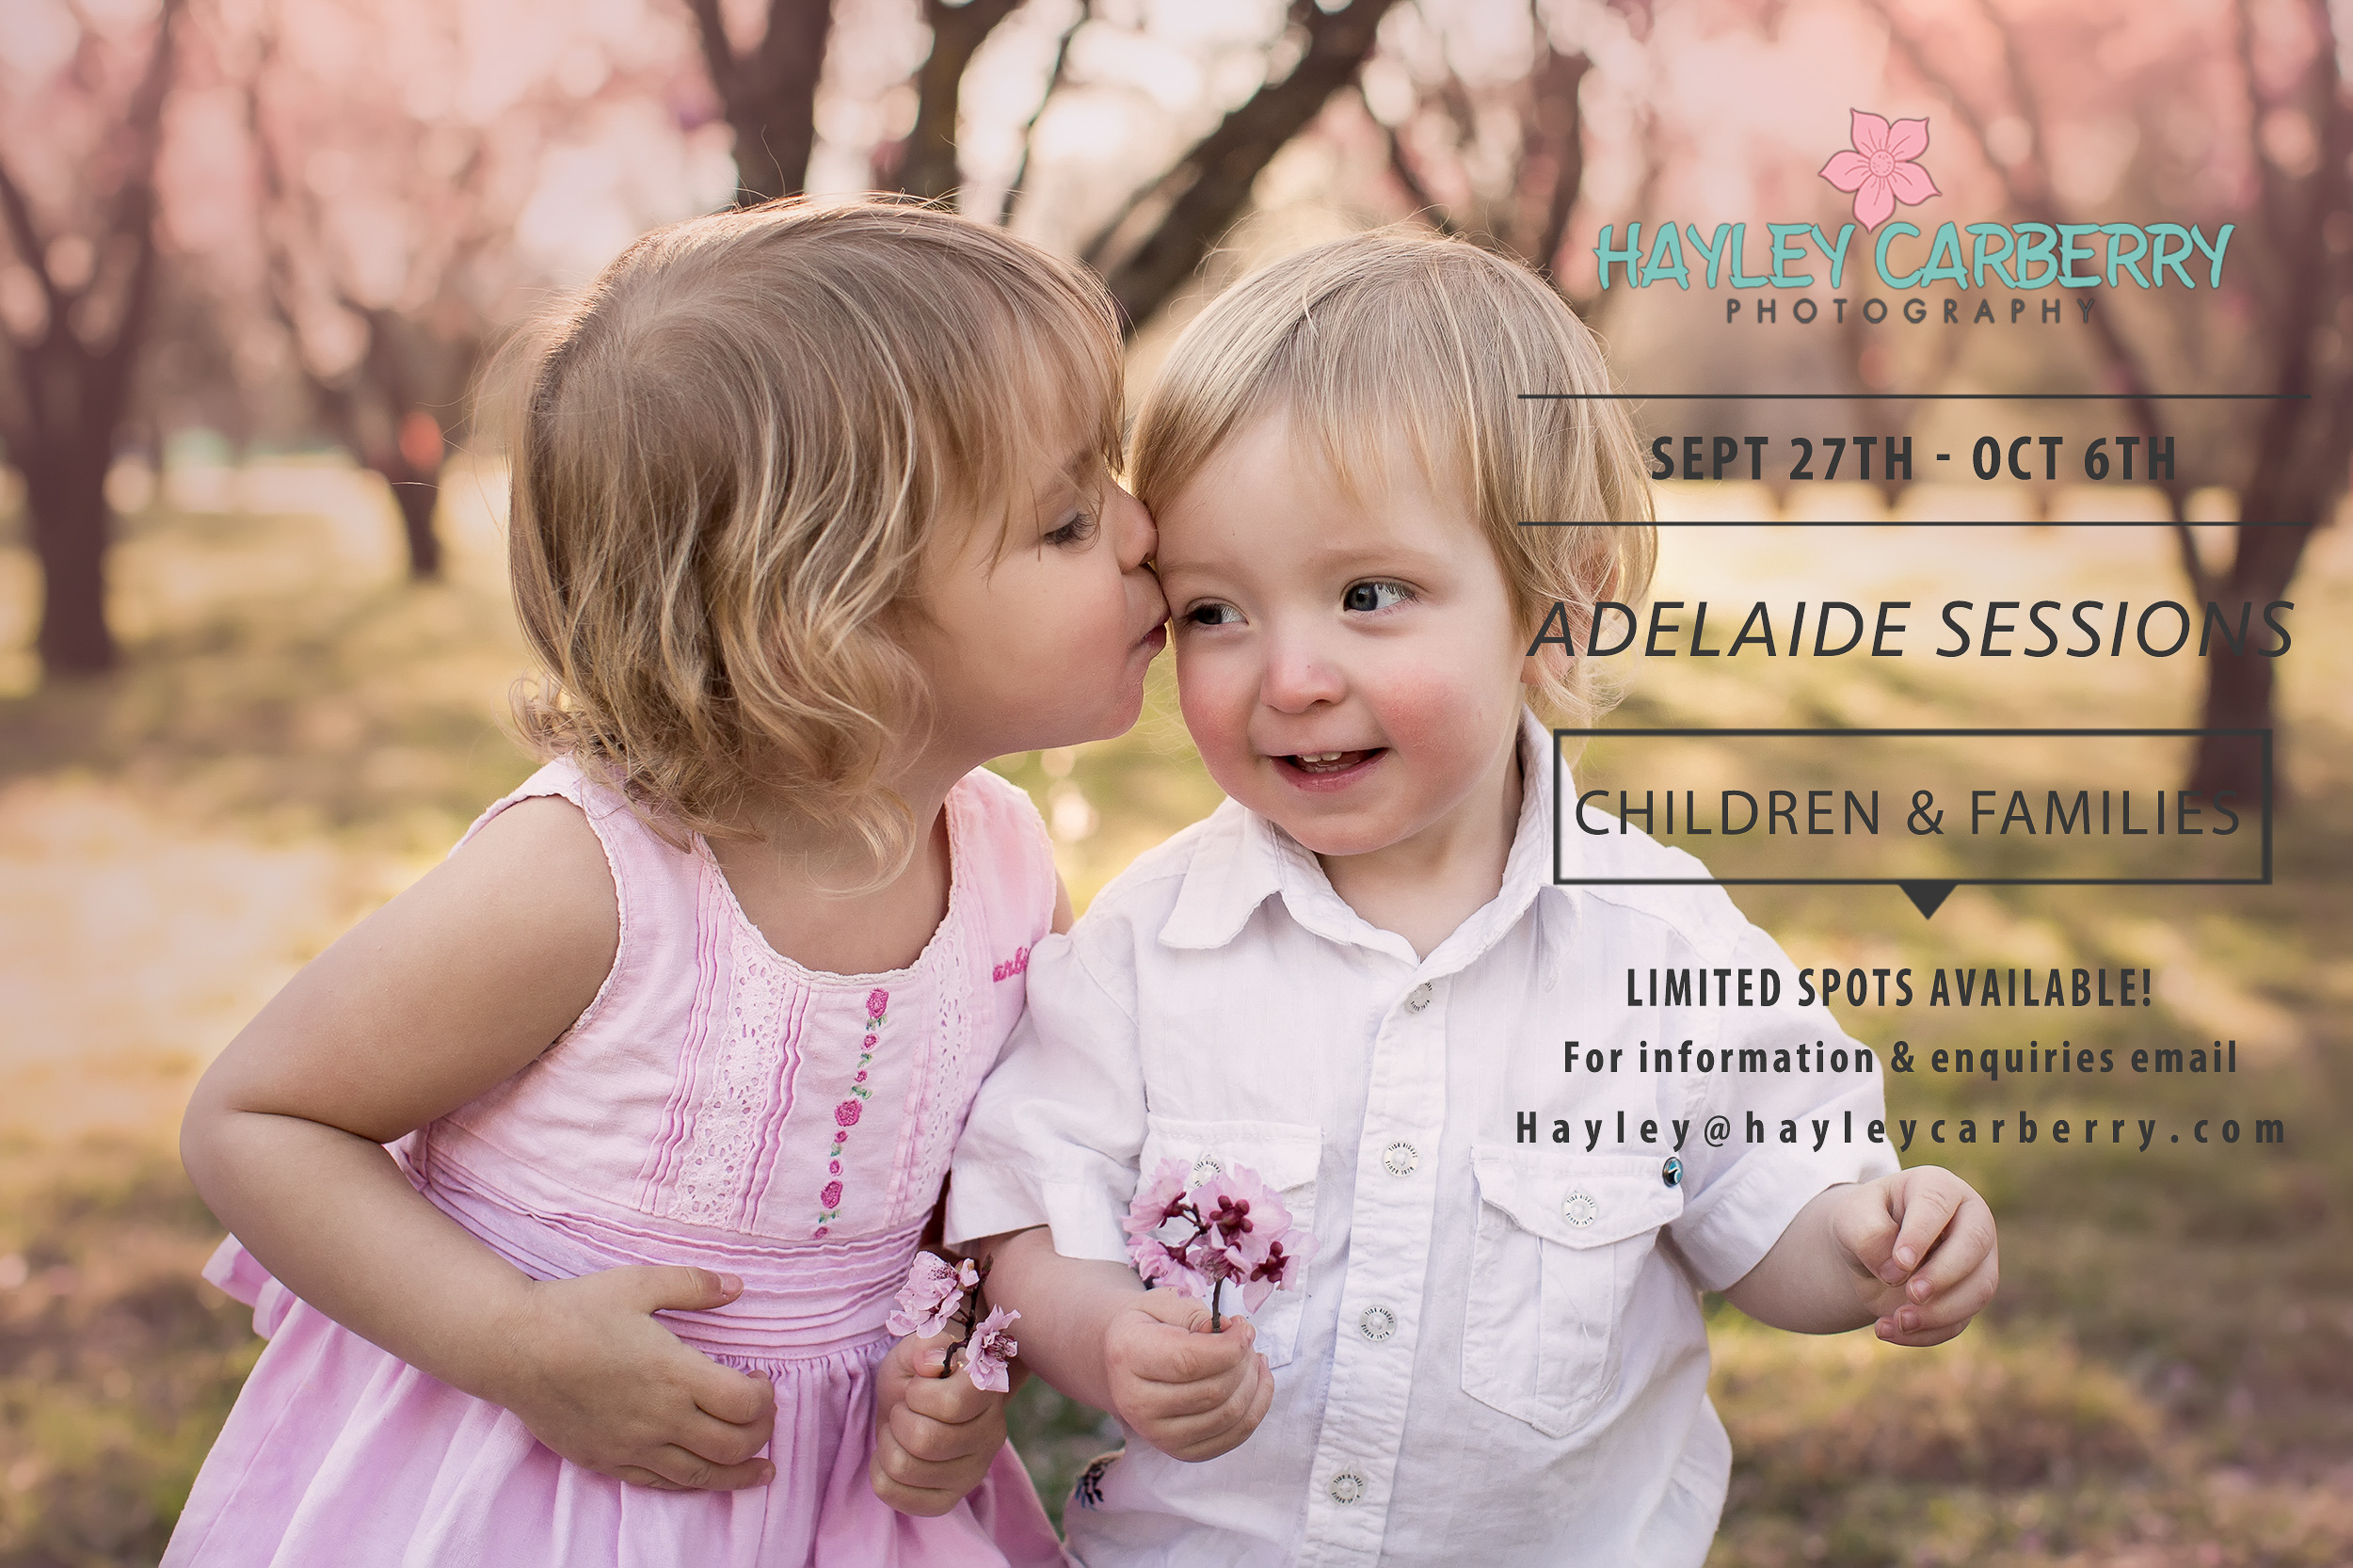 Adelaide Babies Children Family Sessions